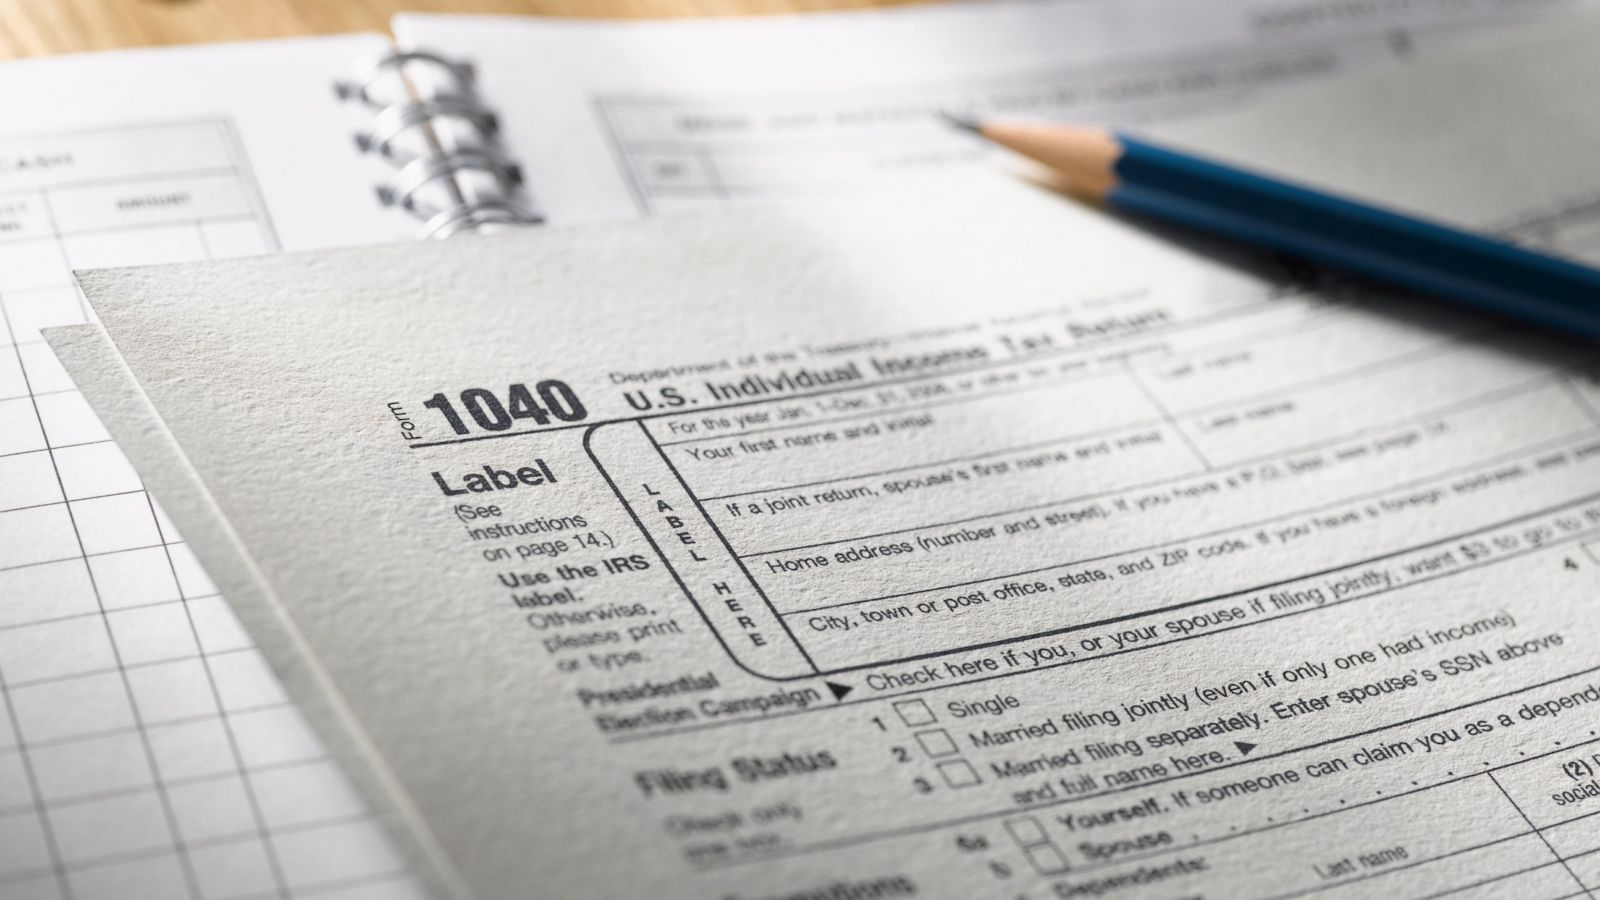 Is Filing Taxes Jointly a Good Idea? - ABC News